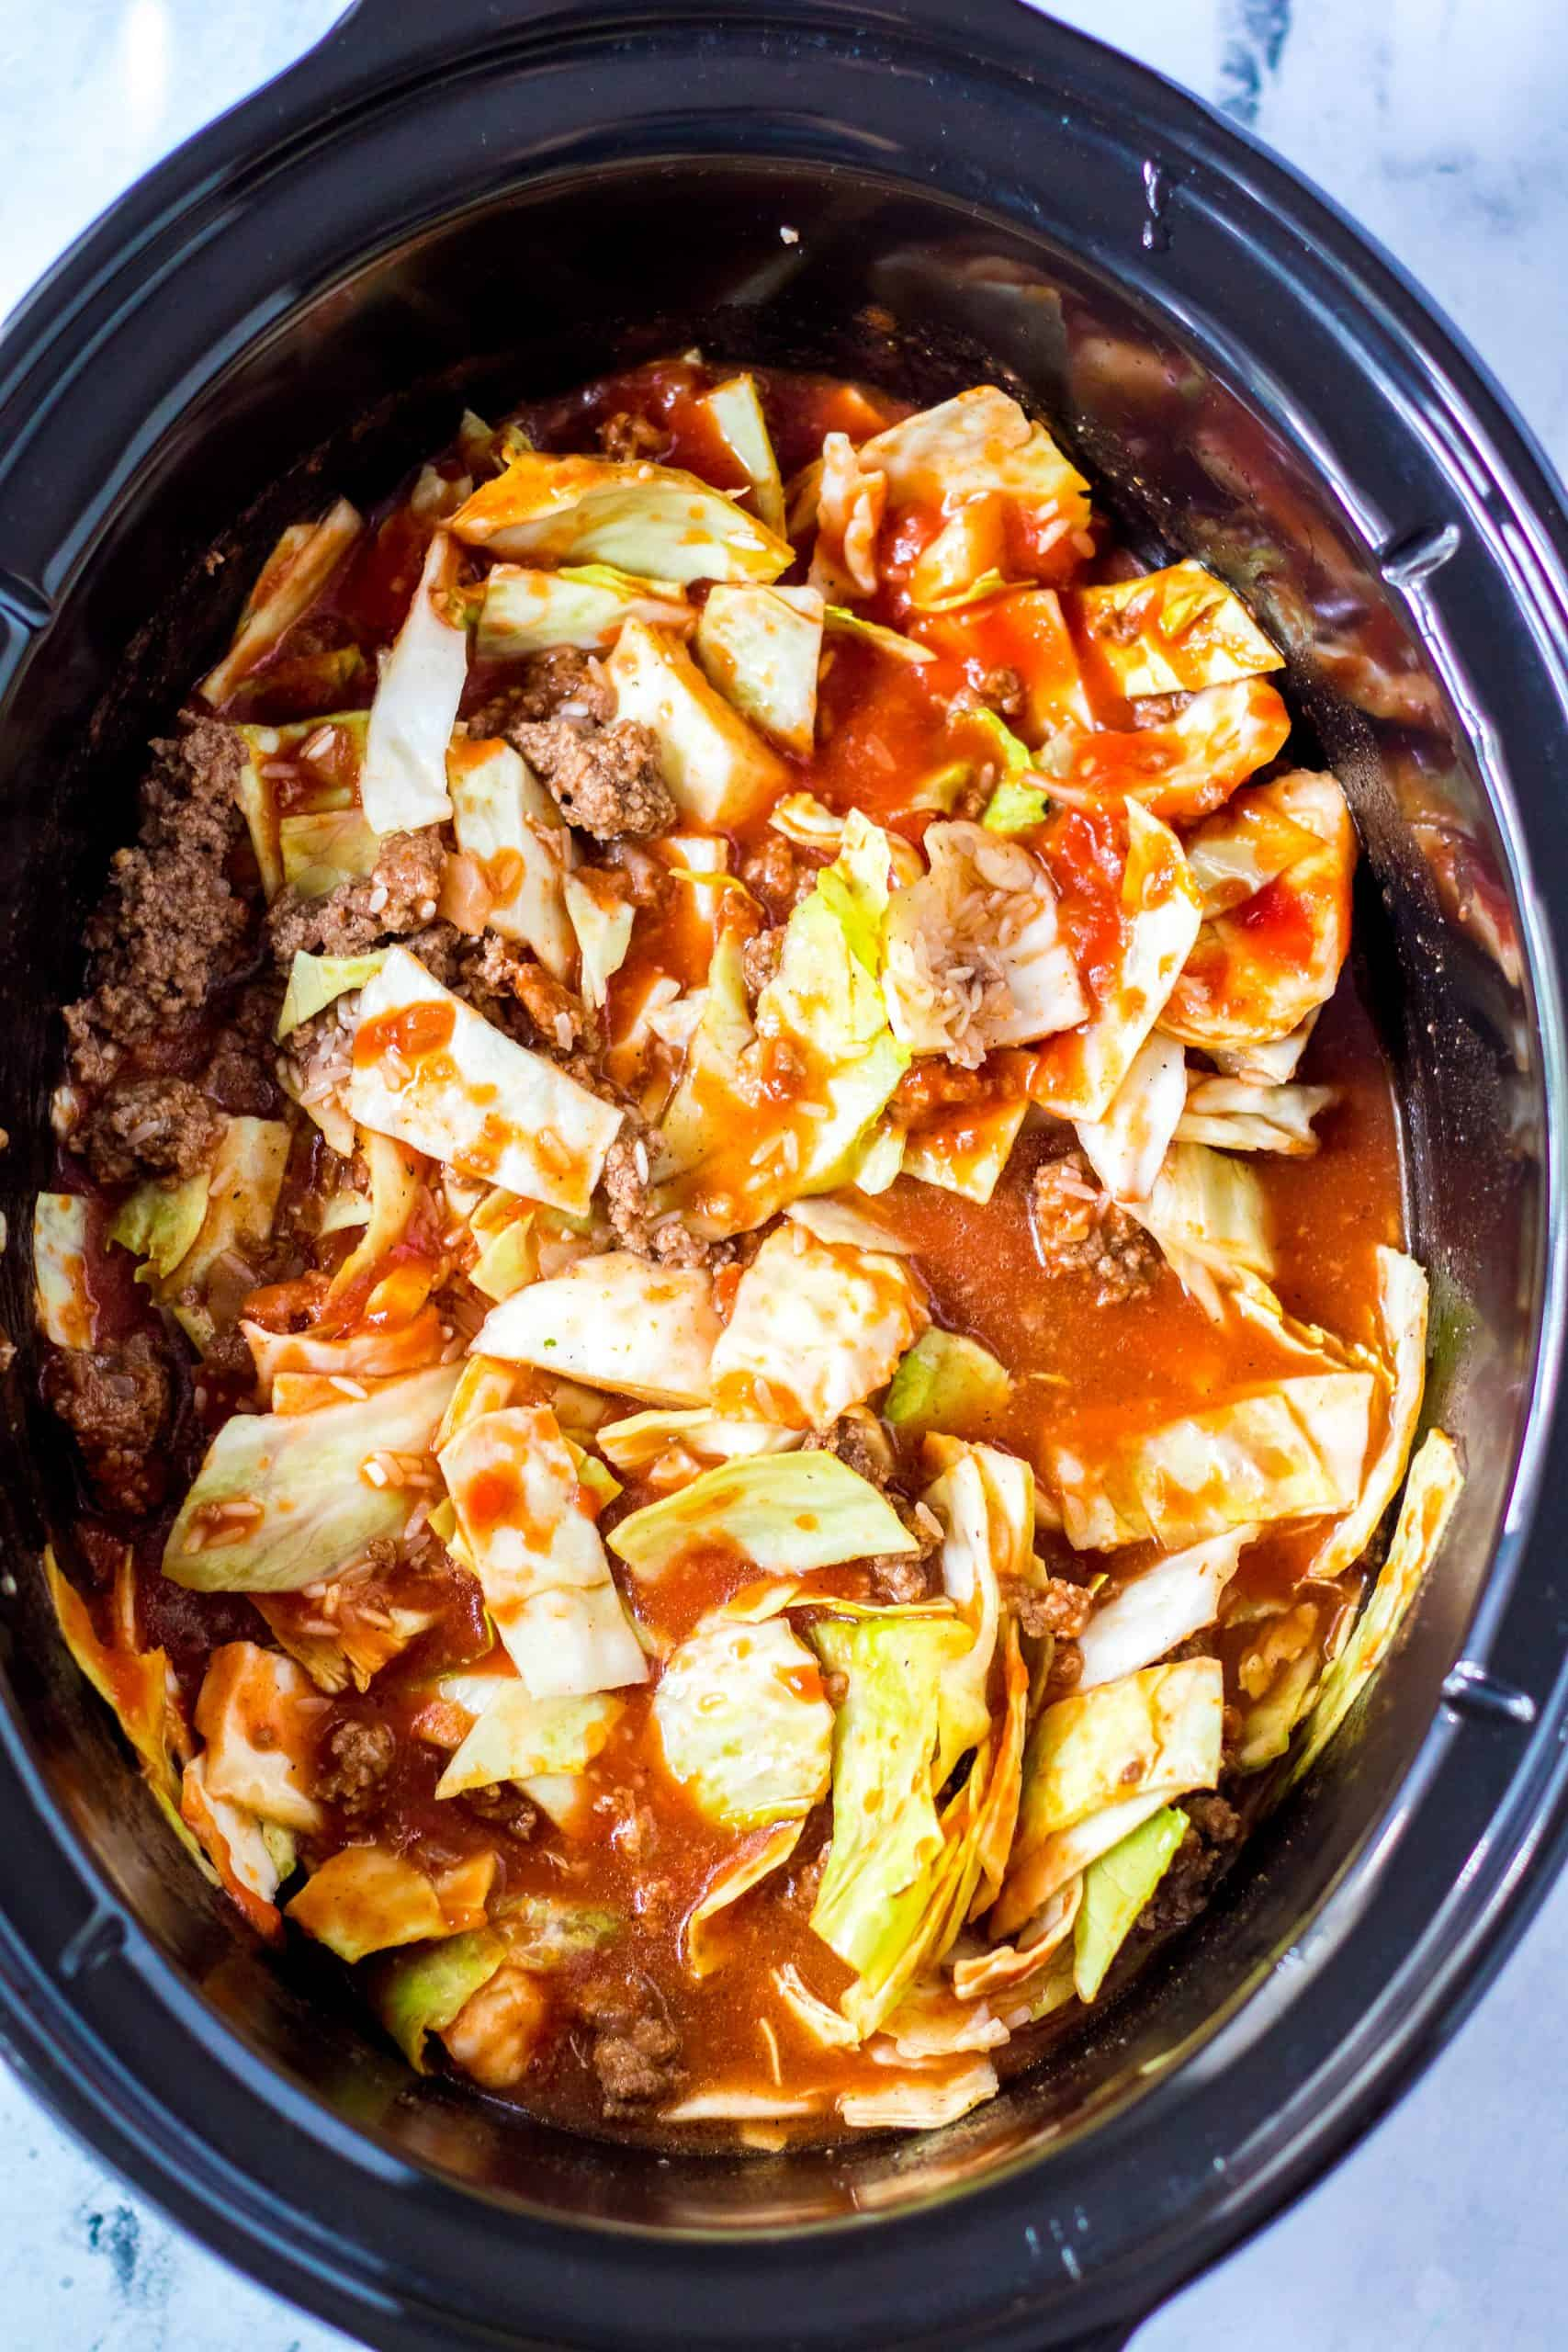 Cabbage added to crock pot and stirred along with other ingredients.